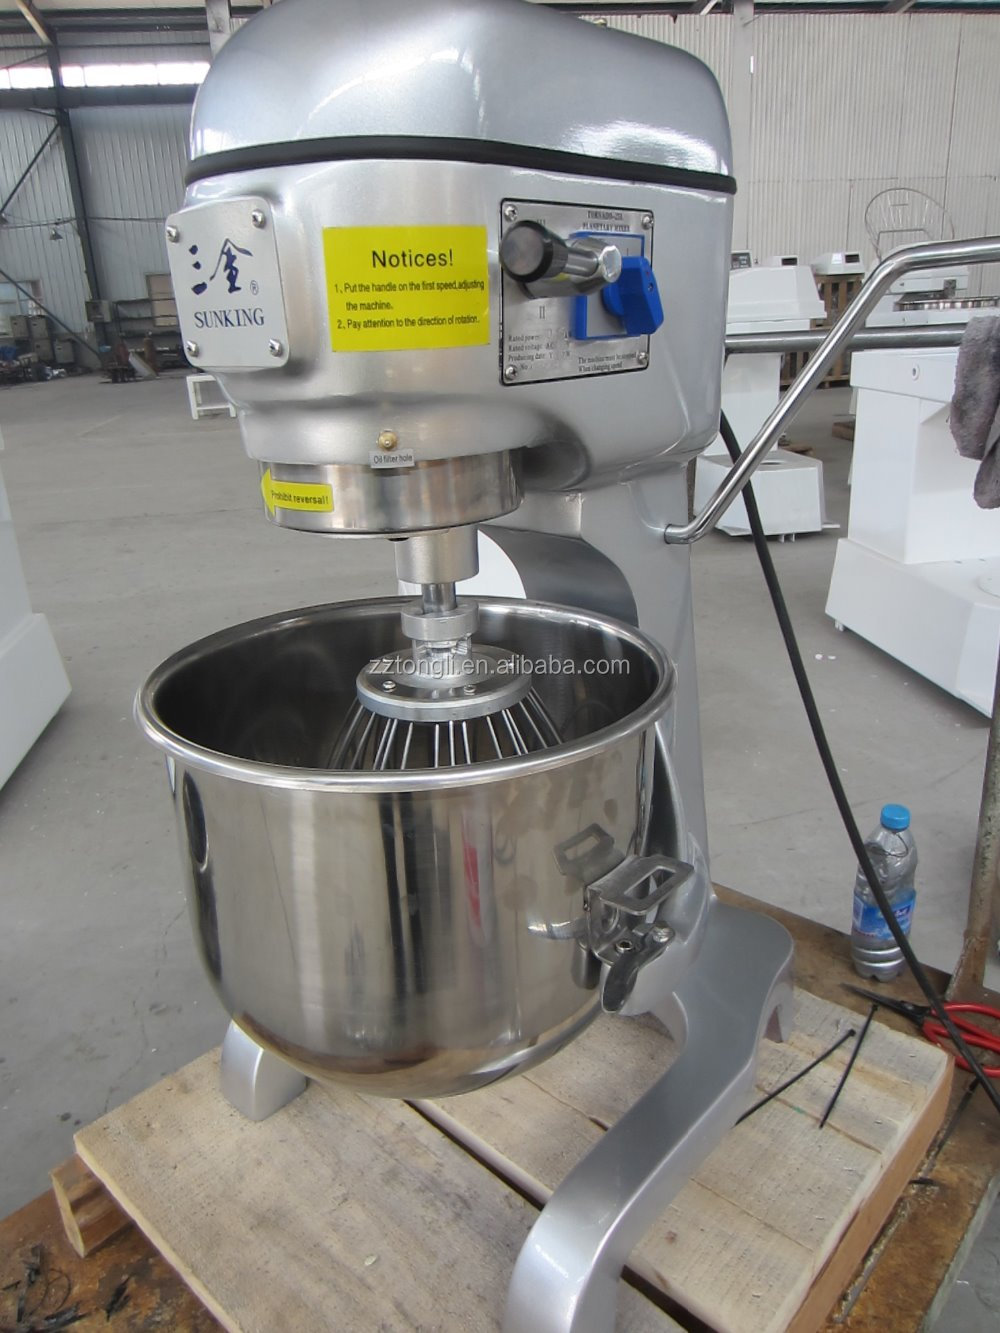 Cake Mixers On Sale ~ Hot selling milk hobart planetary mixers cake mixing